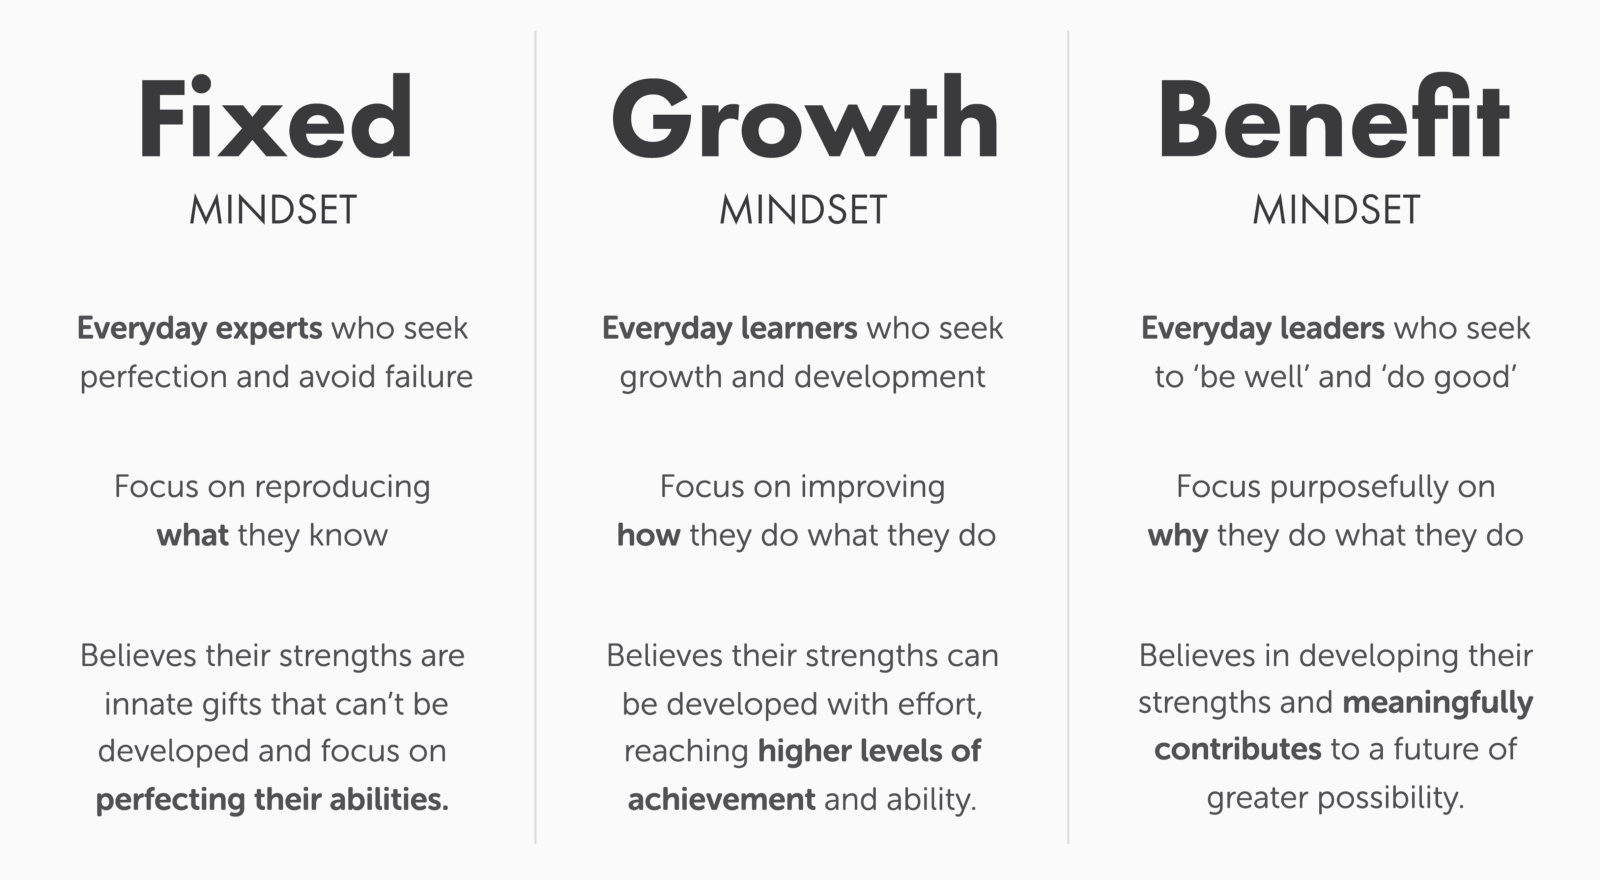 Fixed Mindset vs Growth Mindset: How Your Beliefs Change